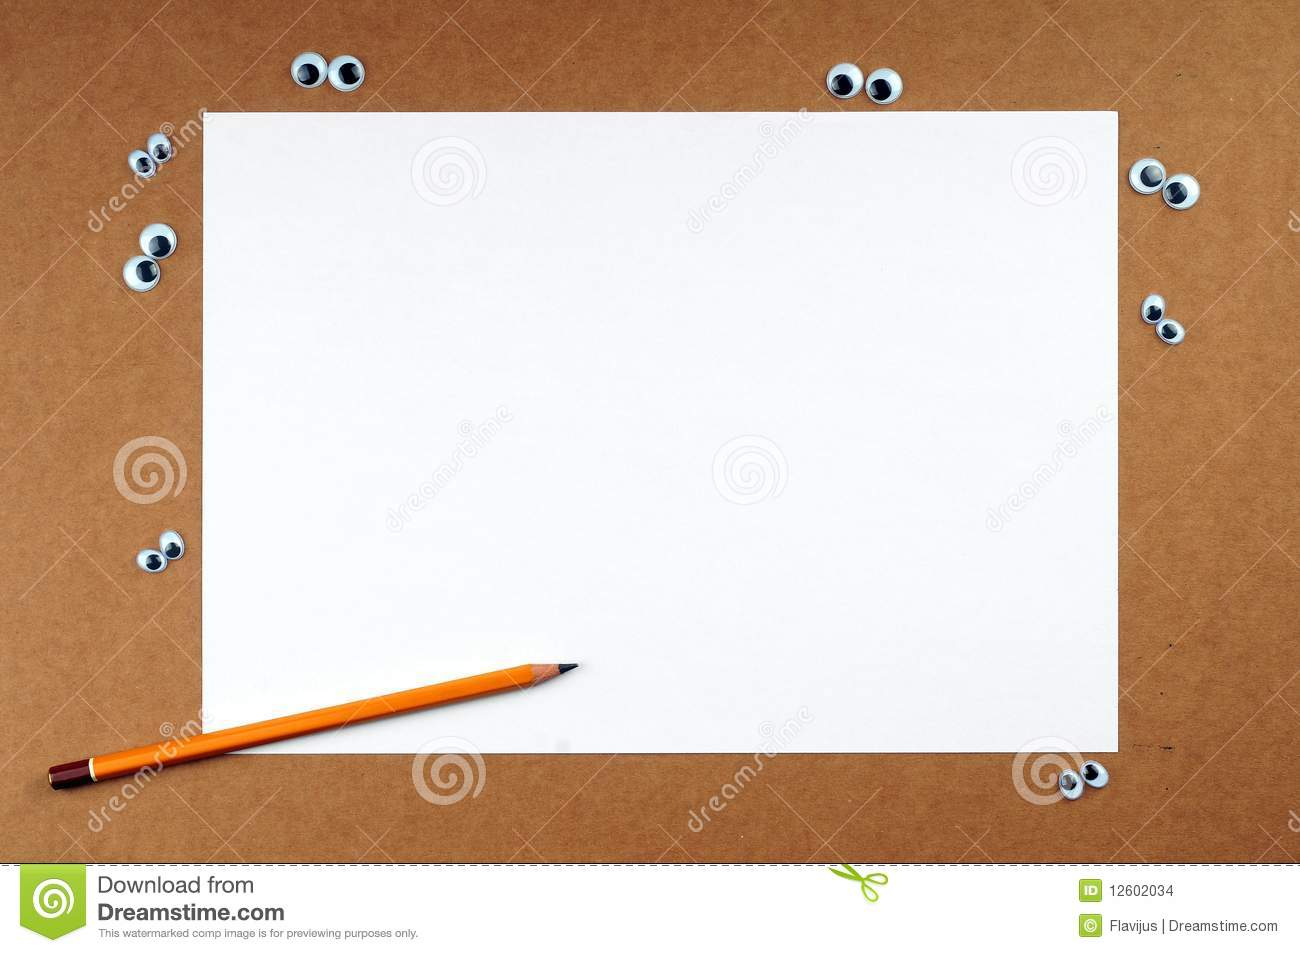 Blank color paper stock photo. Image of memorise, bulletin - 12602034